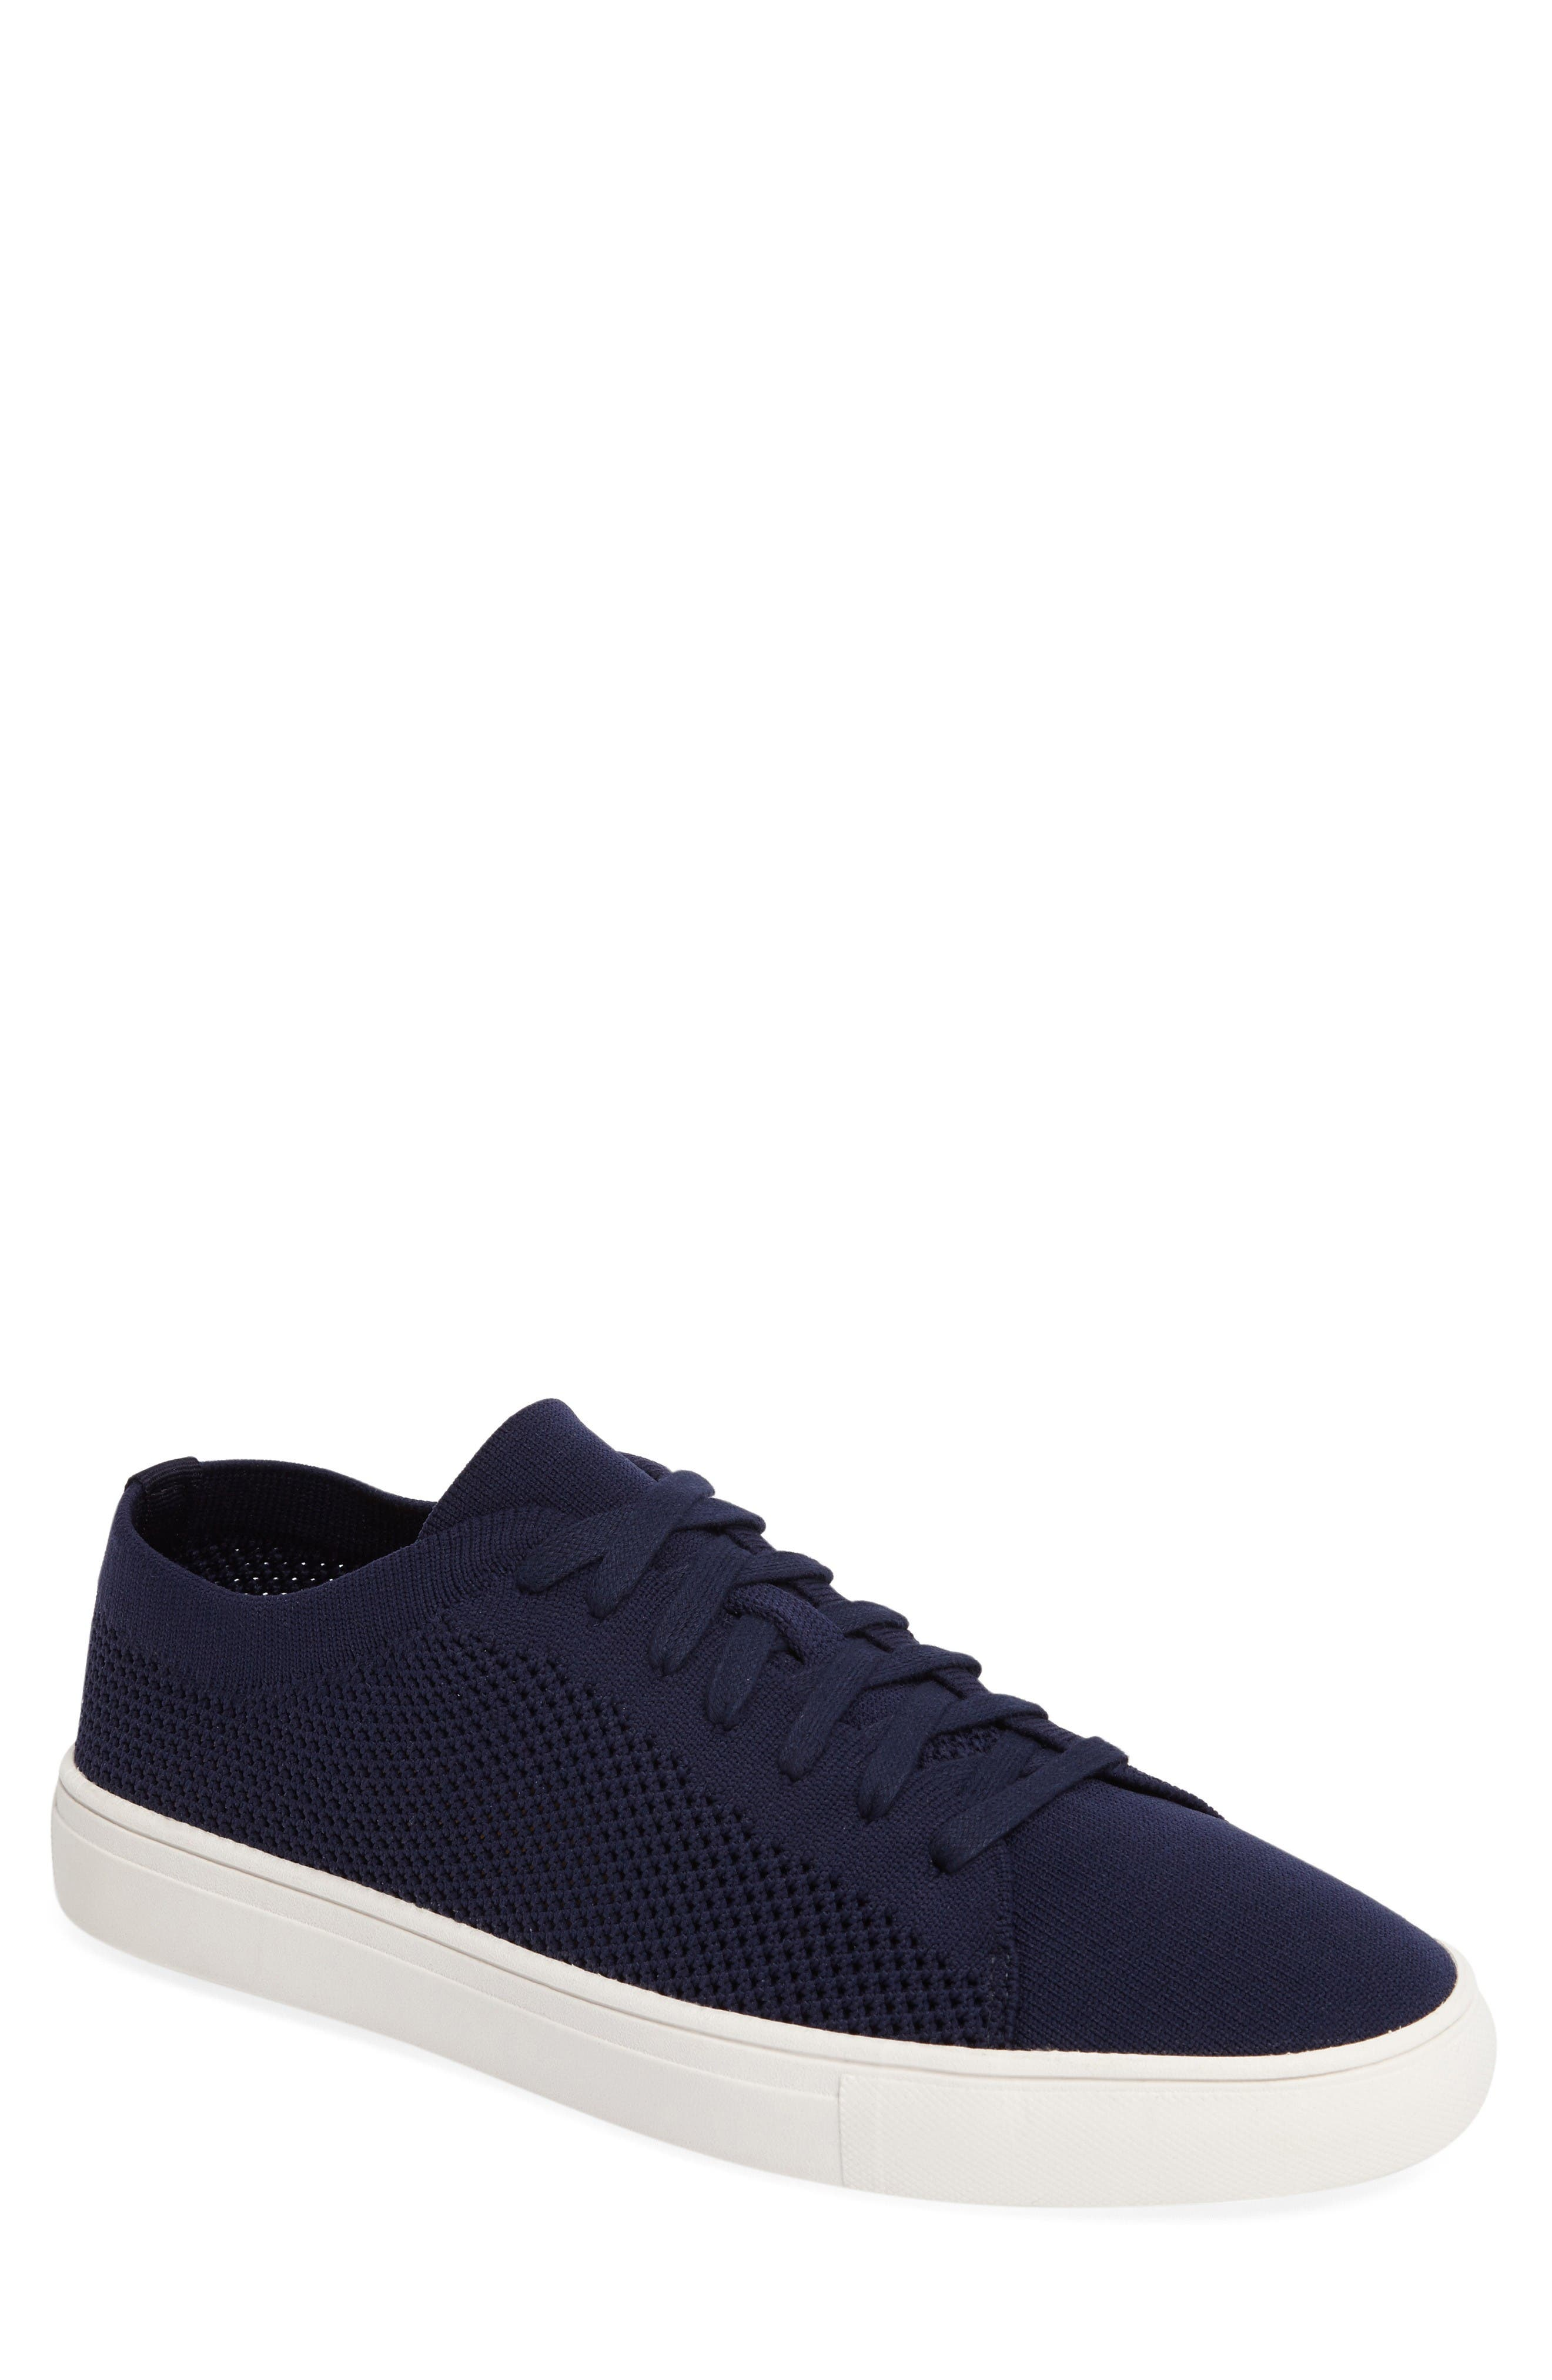 On the Road Woven Sneaker,                             Main thumbnail 1, color,                             Navy